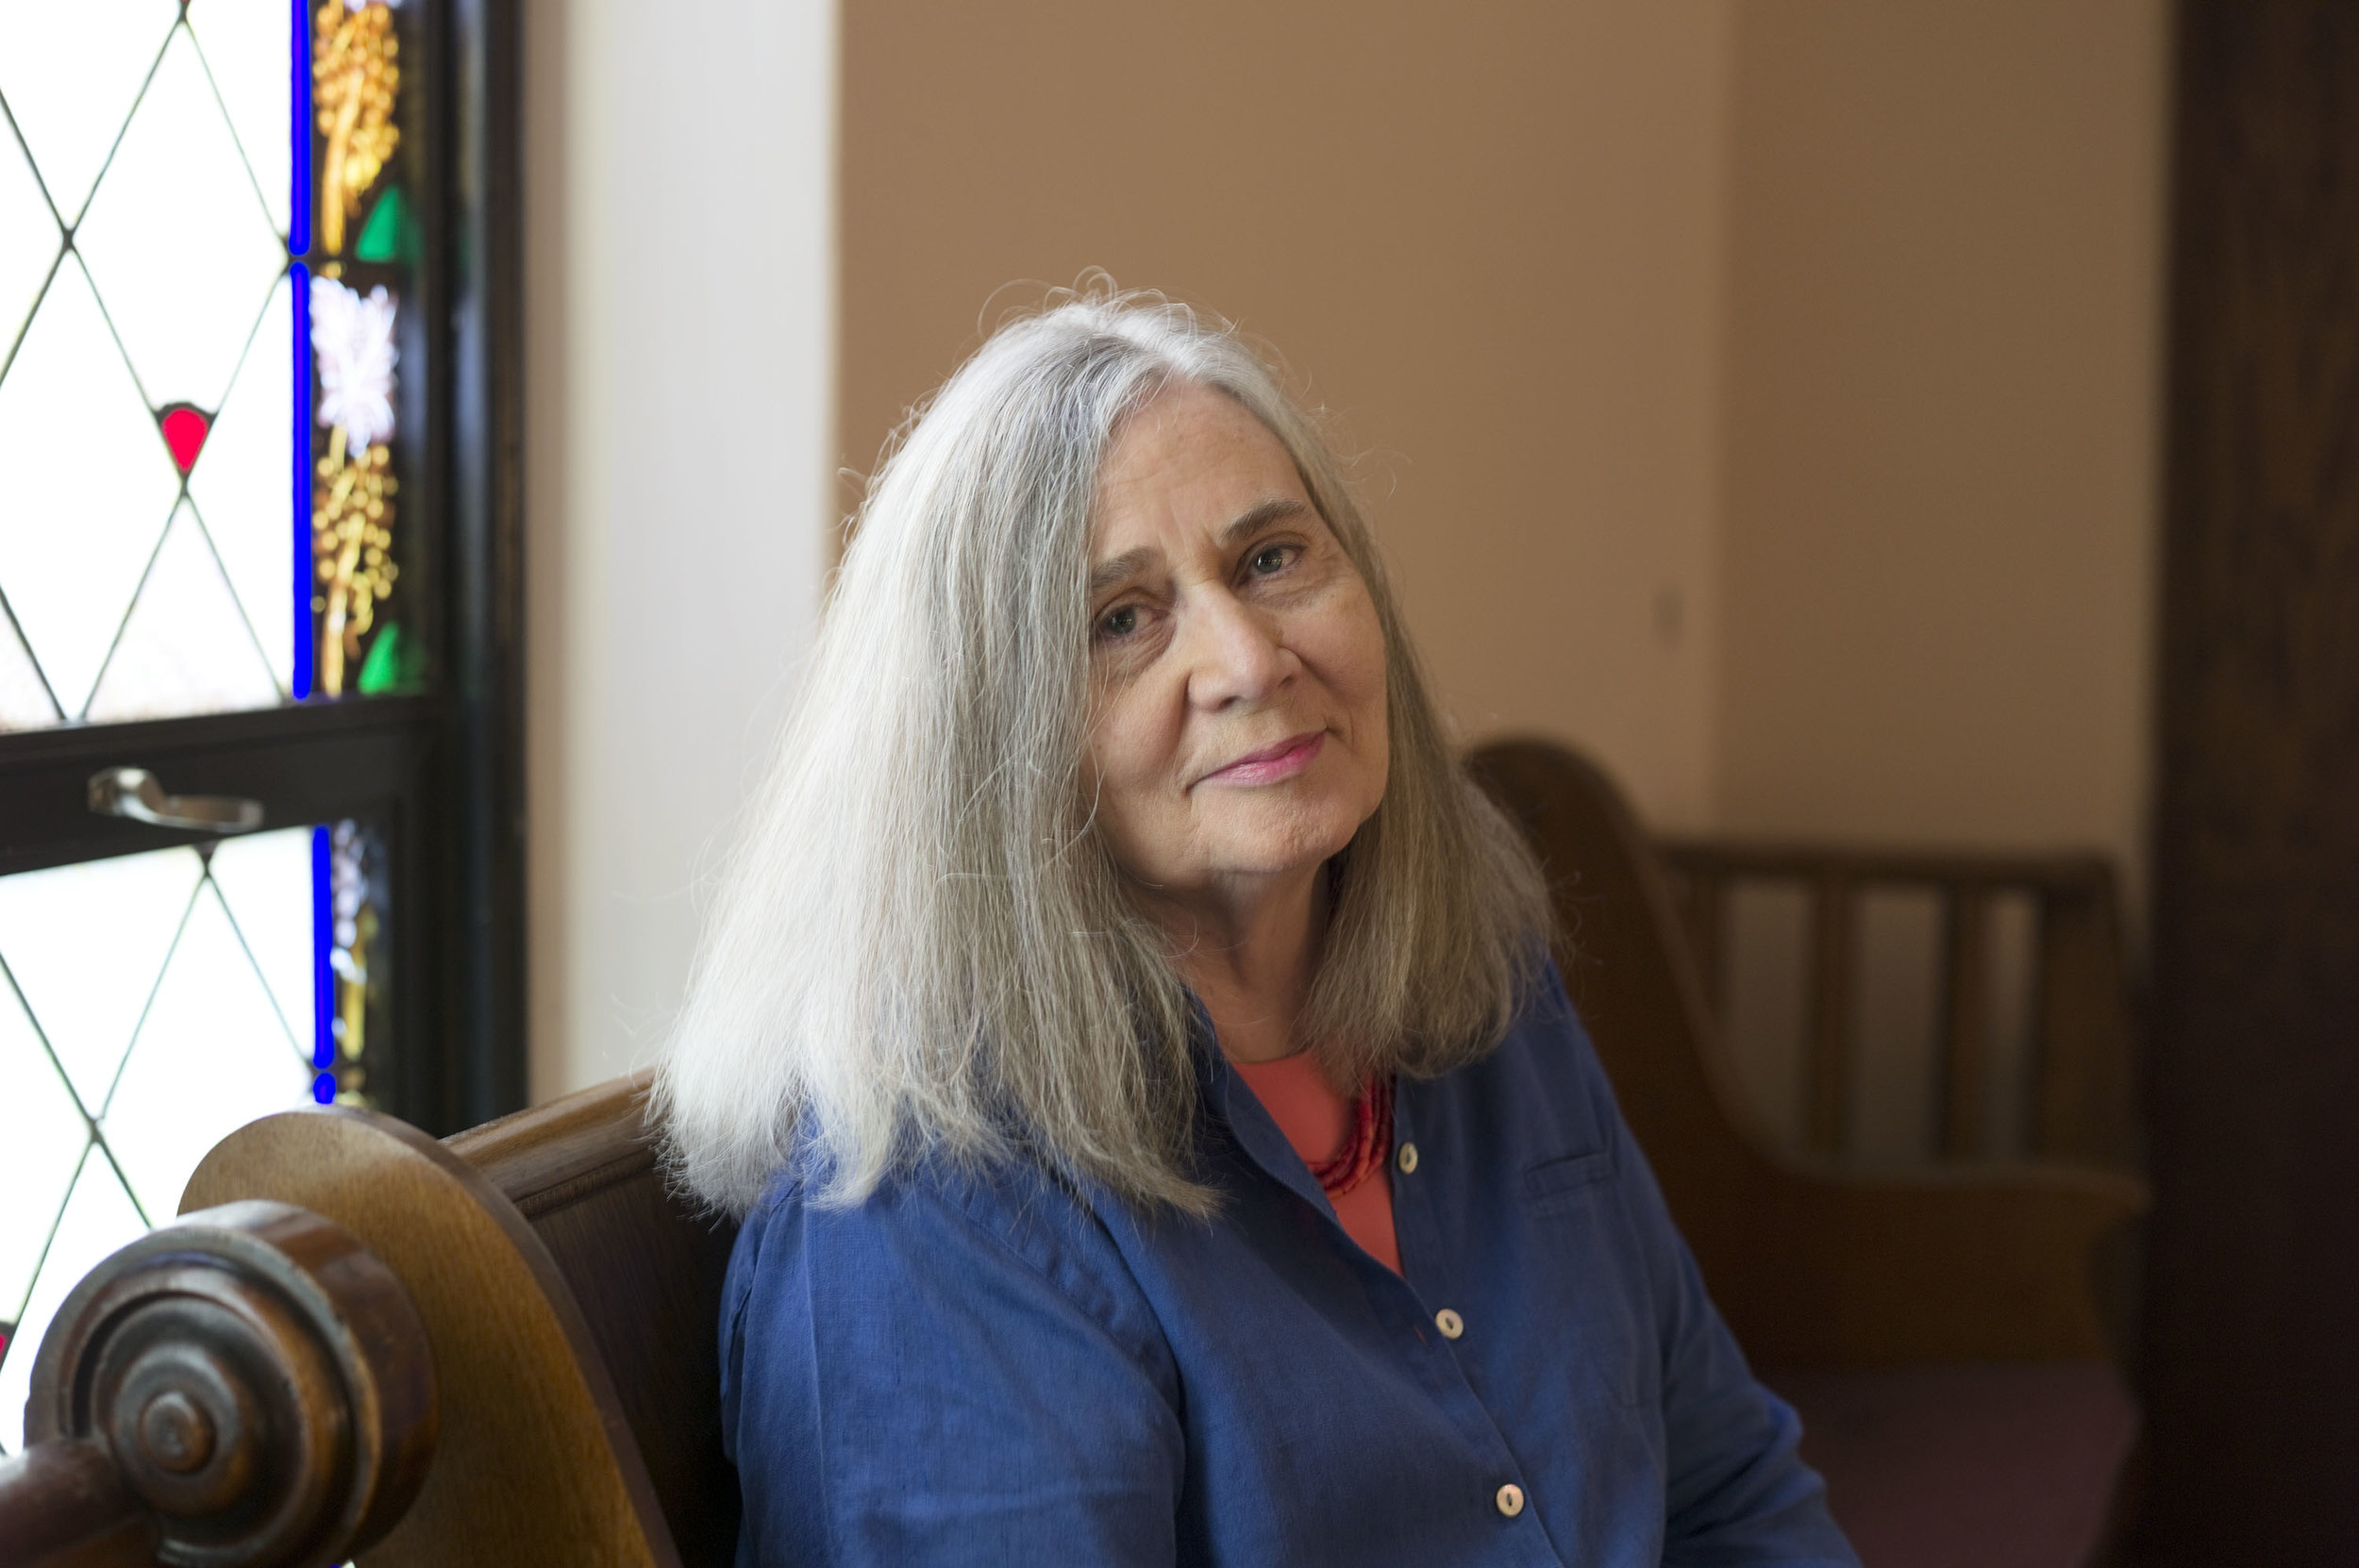 Copy of Marilynne Robinson | October 23, 2017